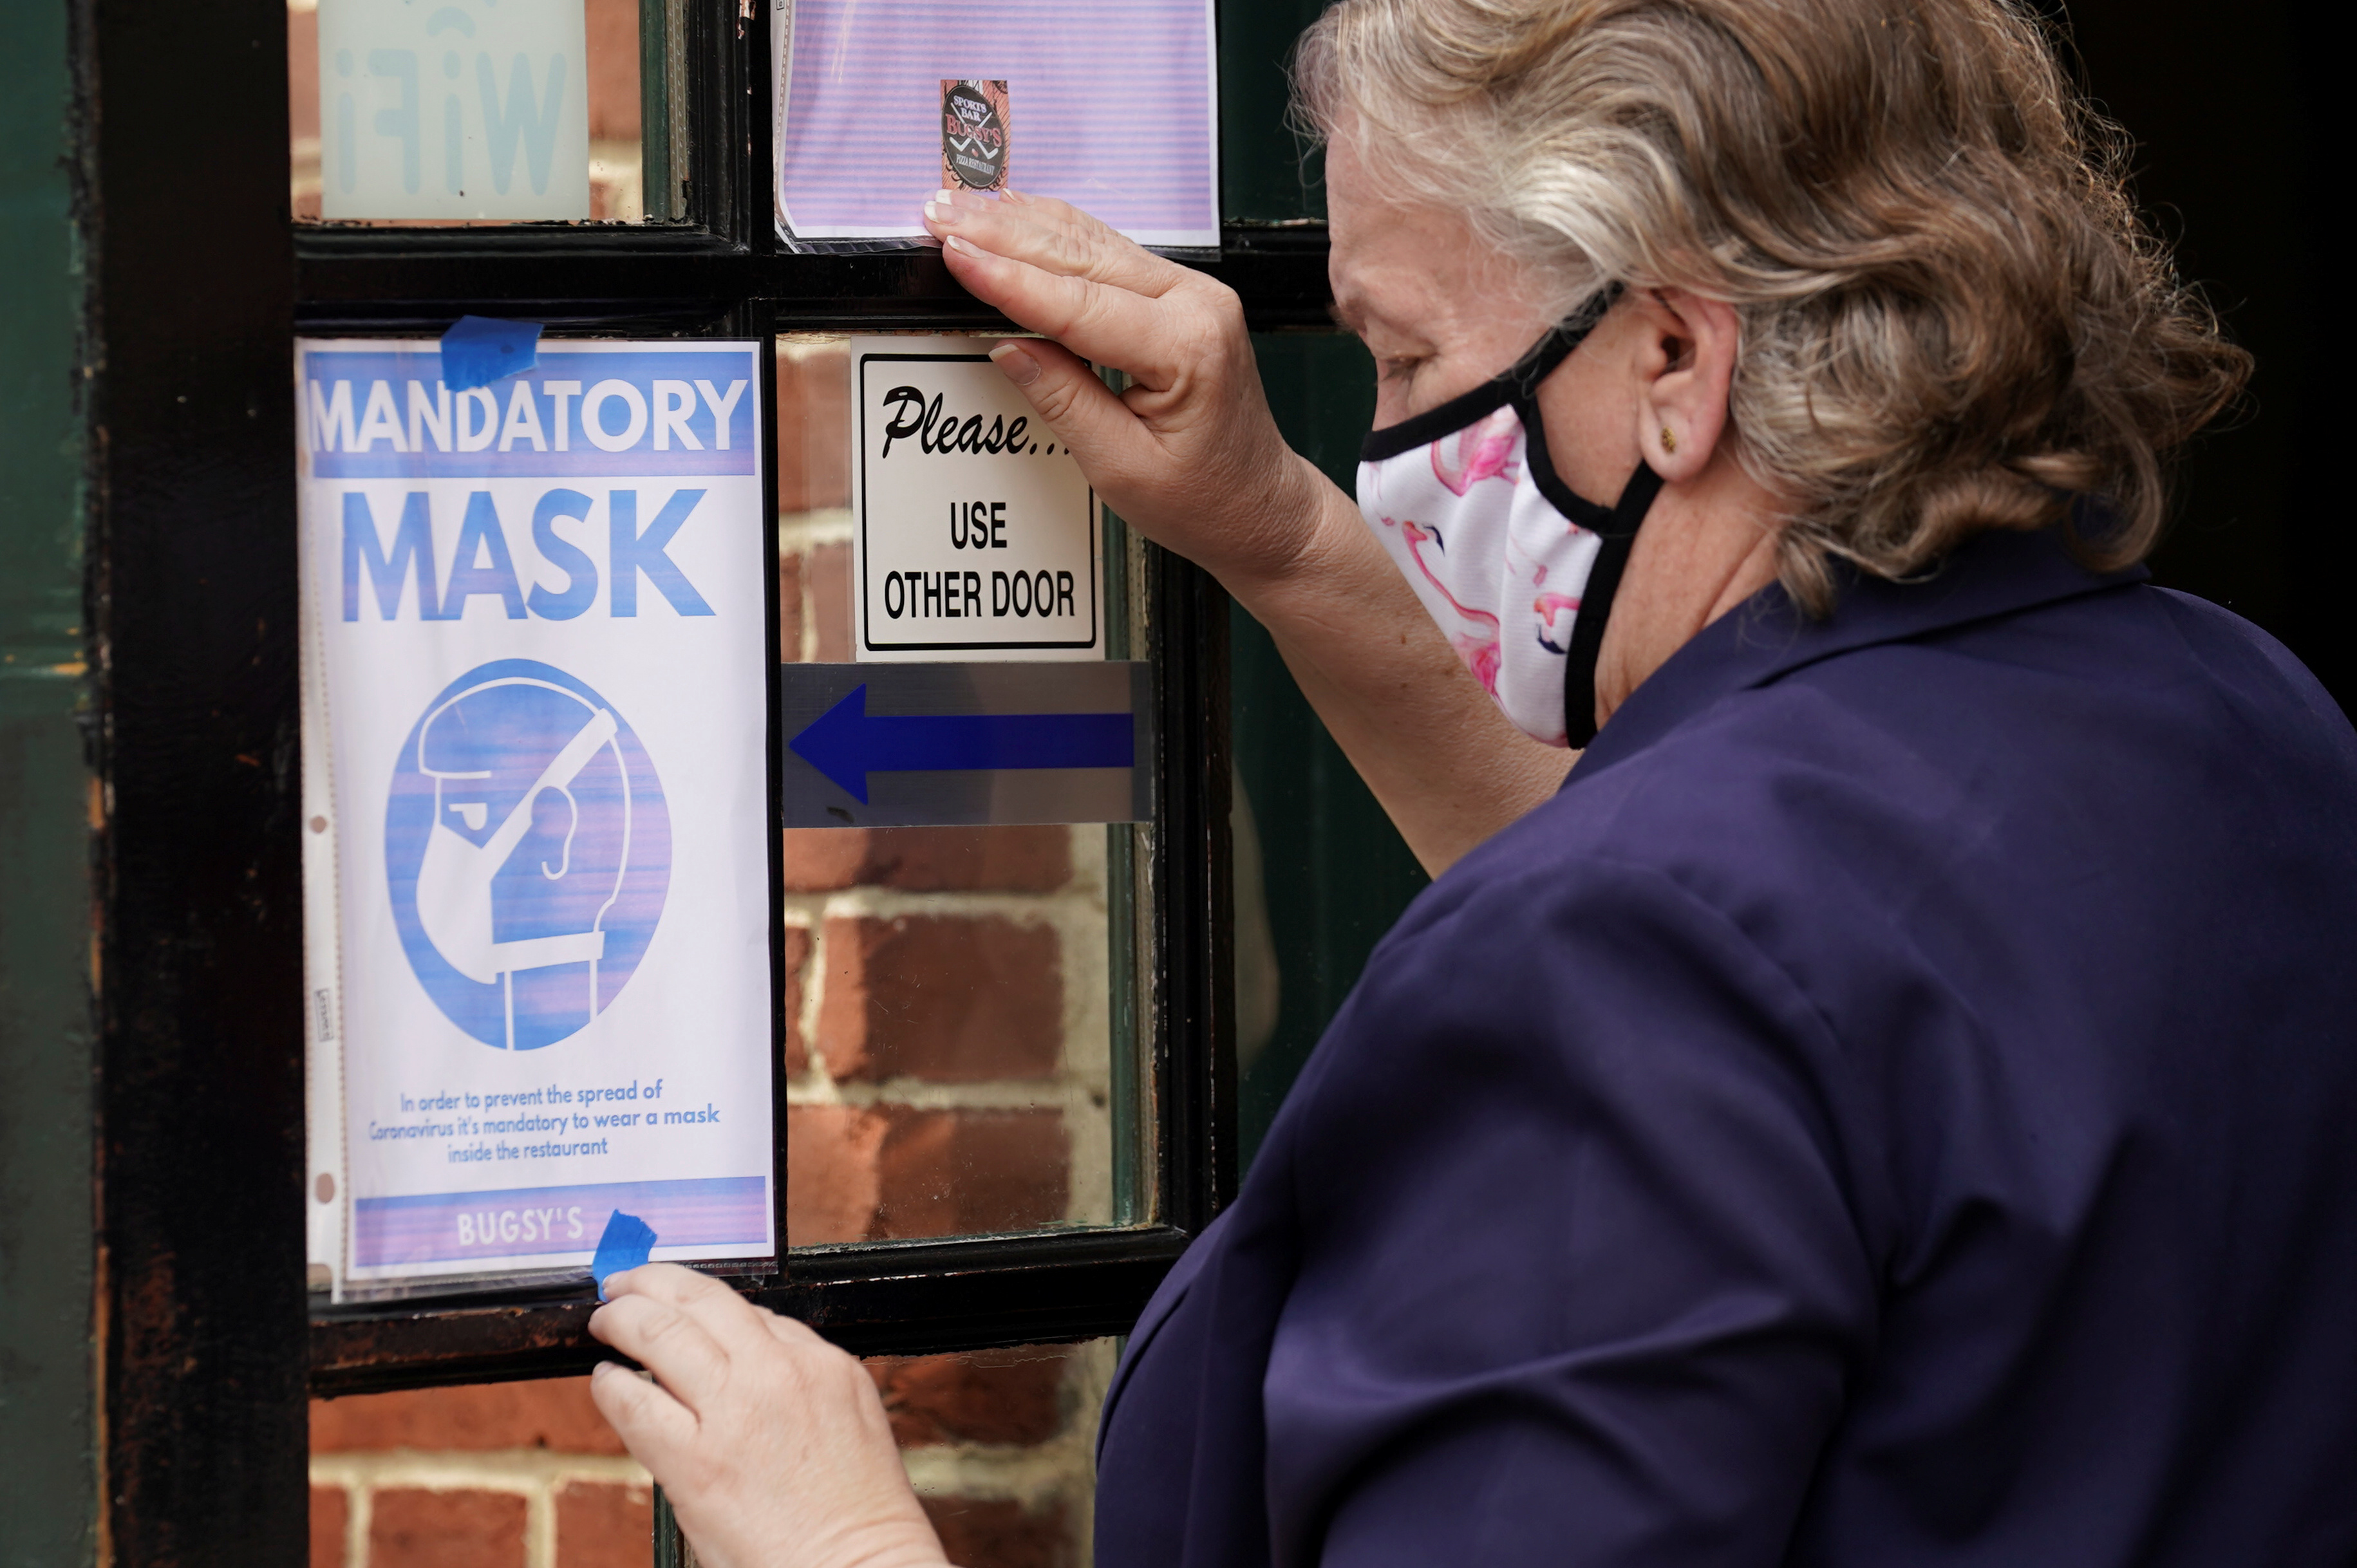 As Phase One of reopening begins in Northern Virginia today, a restaurant worker in a face mask to protect against the coronavirus (COVID-19) puts up a